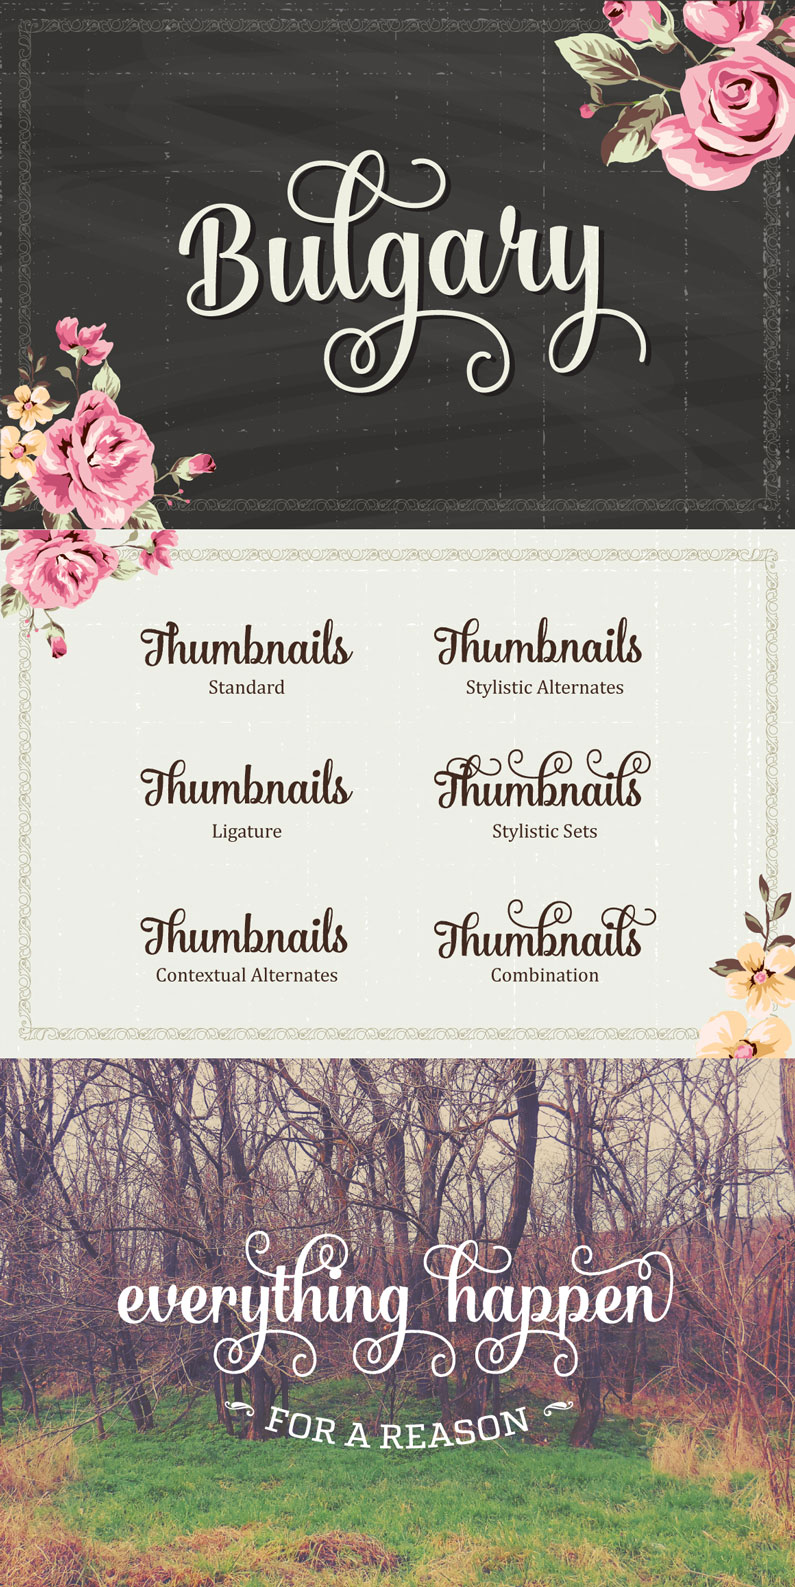 Bulgary is a surreal script that combined brush lettering with traditional hand writing. It is multipurpose and flexible, make it easy to match with another typefaces to create some beautiful project such as wedding invitation, vintage design, greeting card, poster, book cover, illustration, etc.